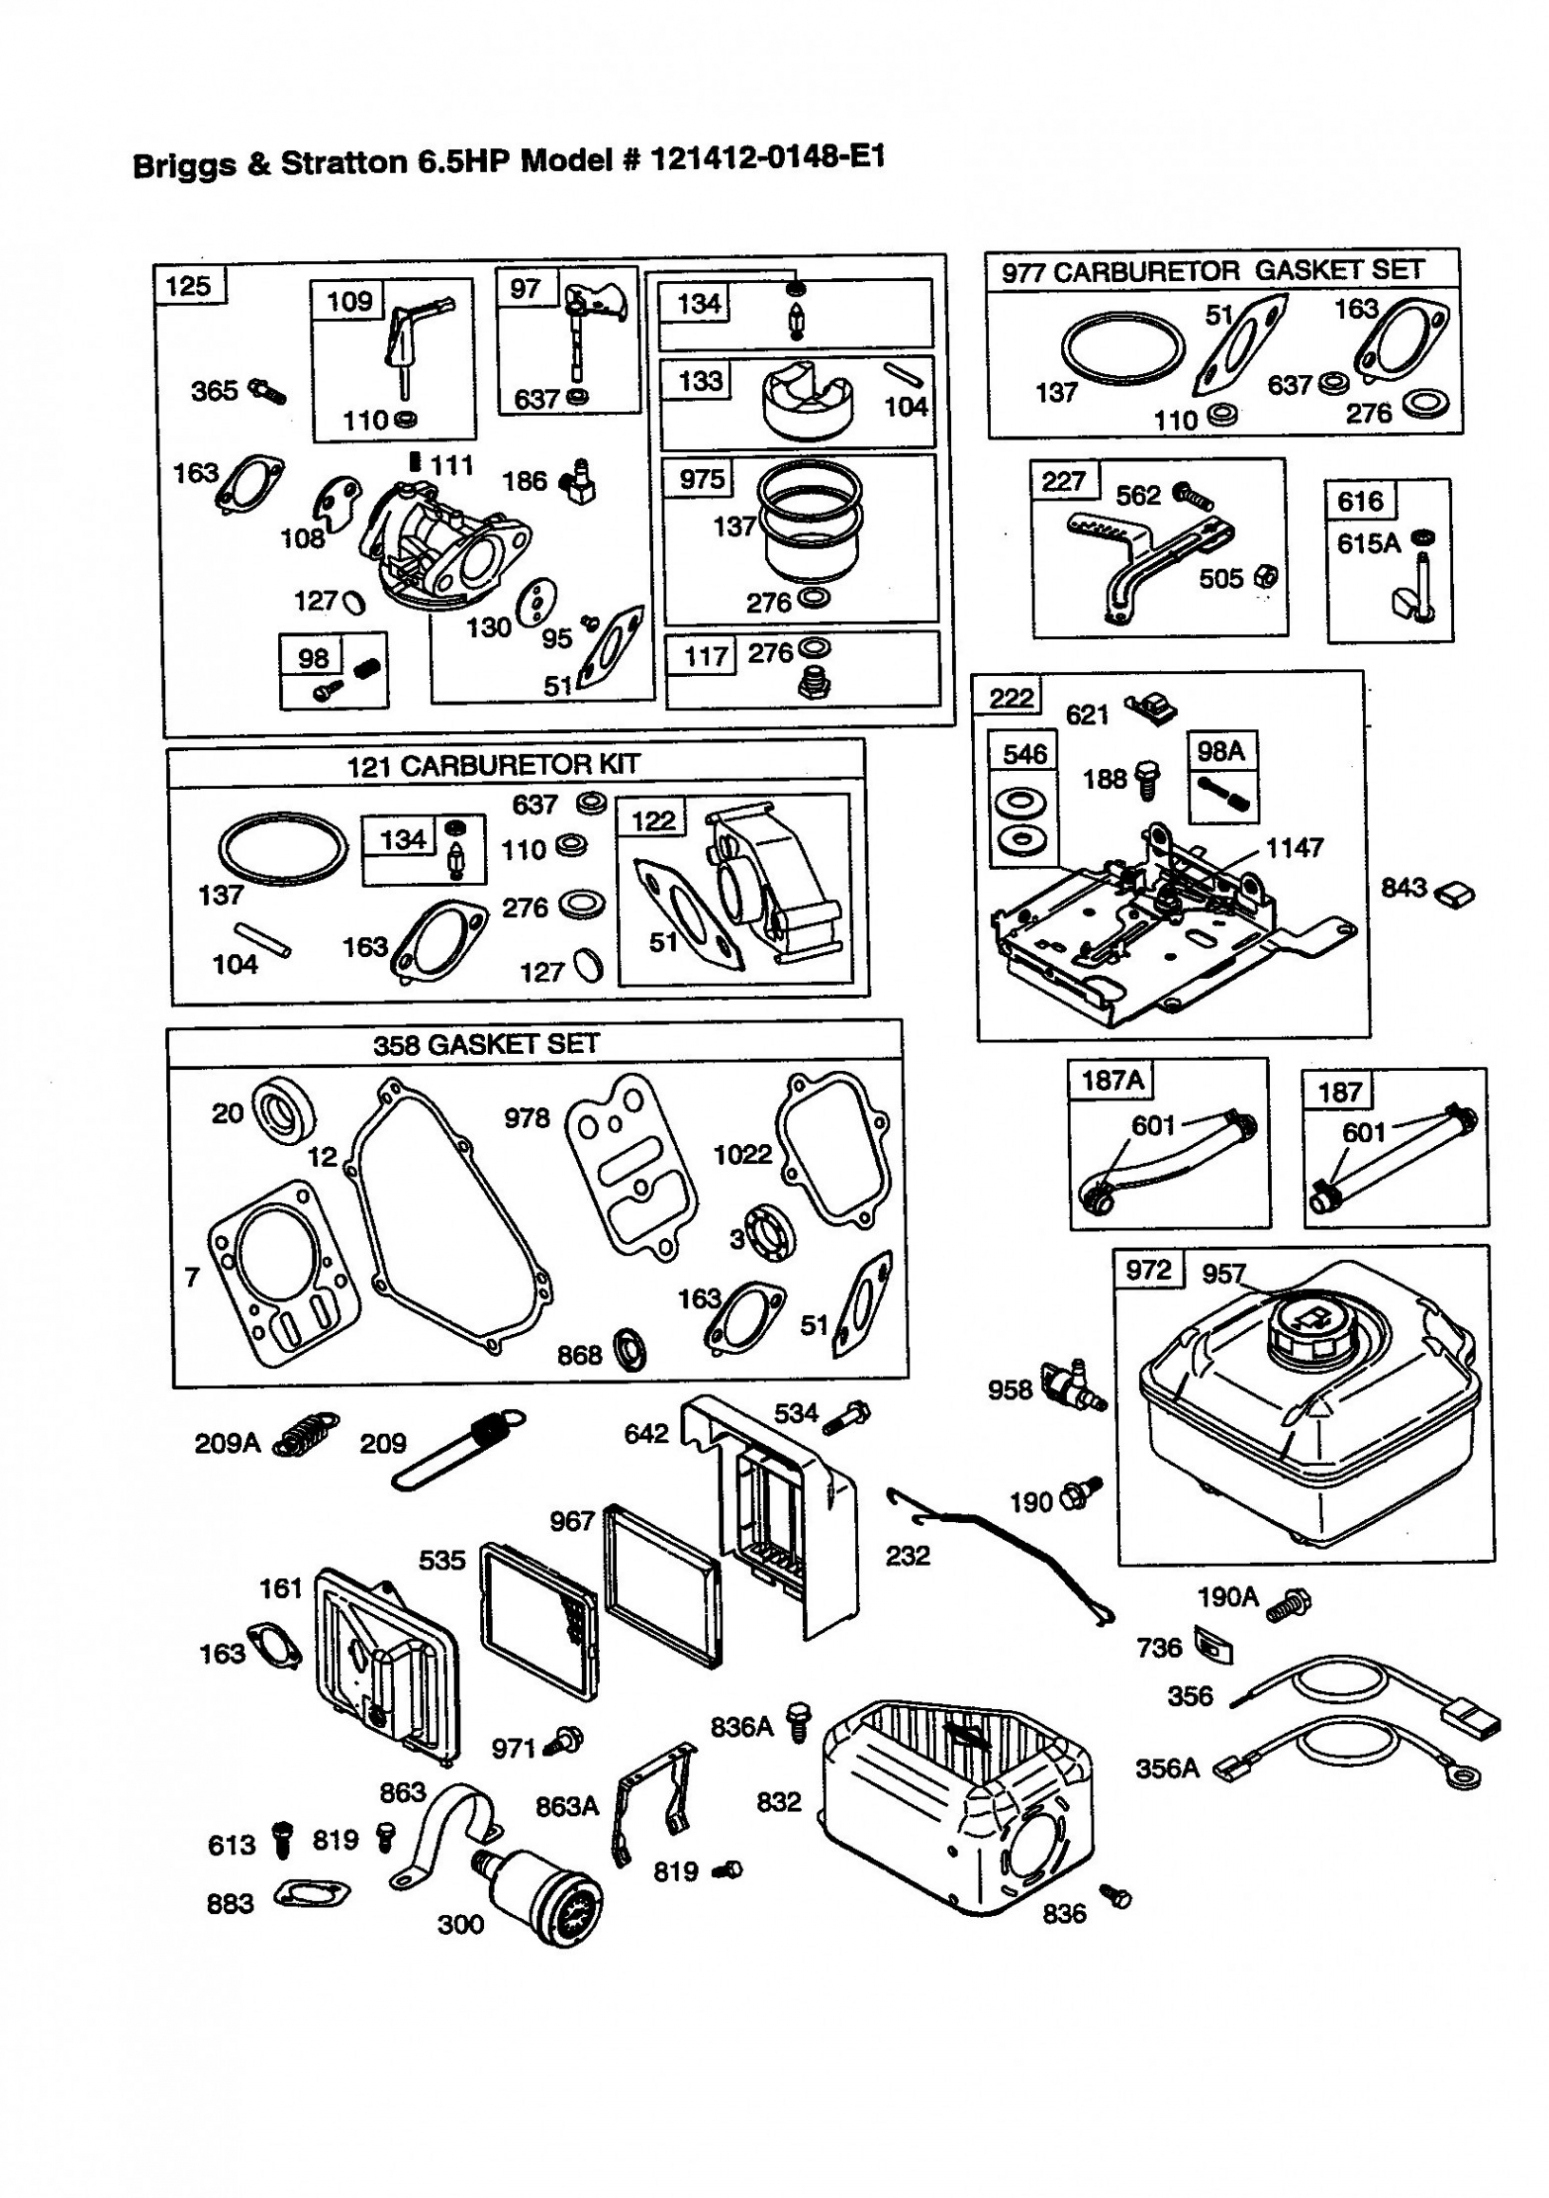 Wiring Diagram Briggs Stratton Engine Archives Gidn Co Best – Briggs - Briggs And Stratton V Twin Wiring Diagram